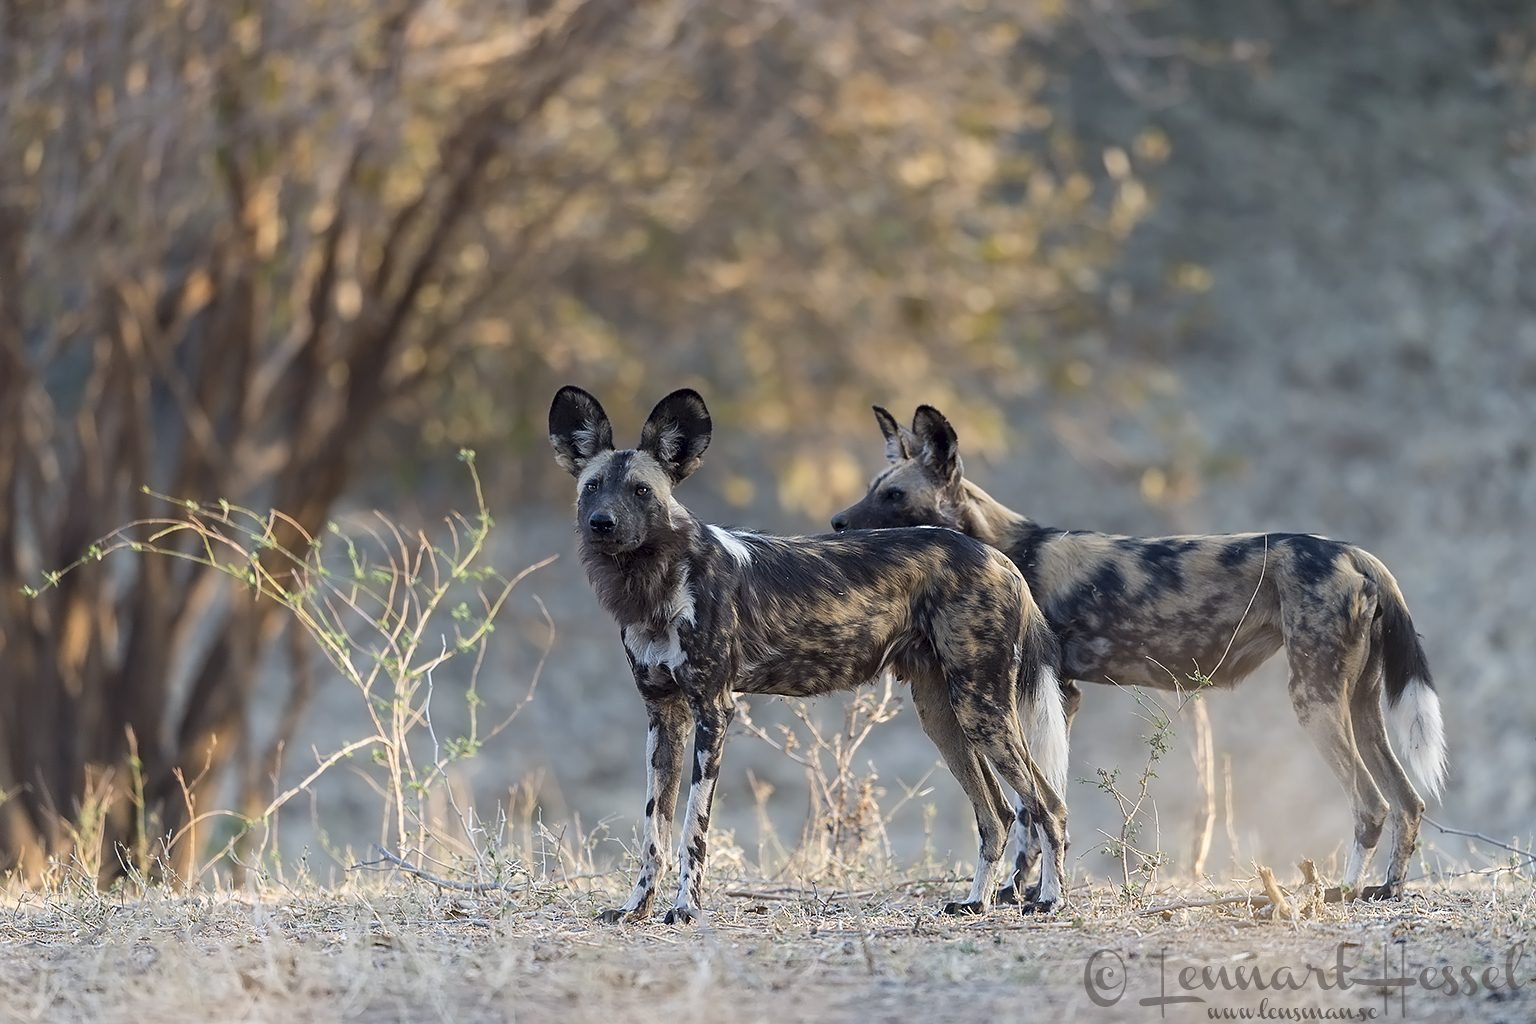 Painted Dogs. Mana Pools National Park